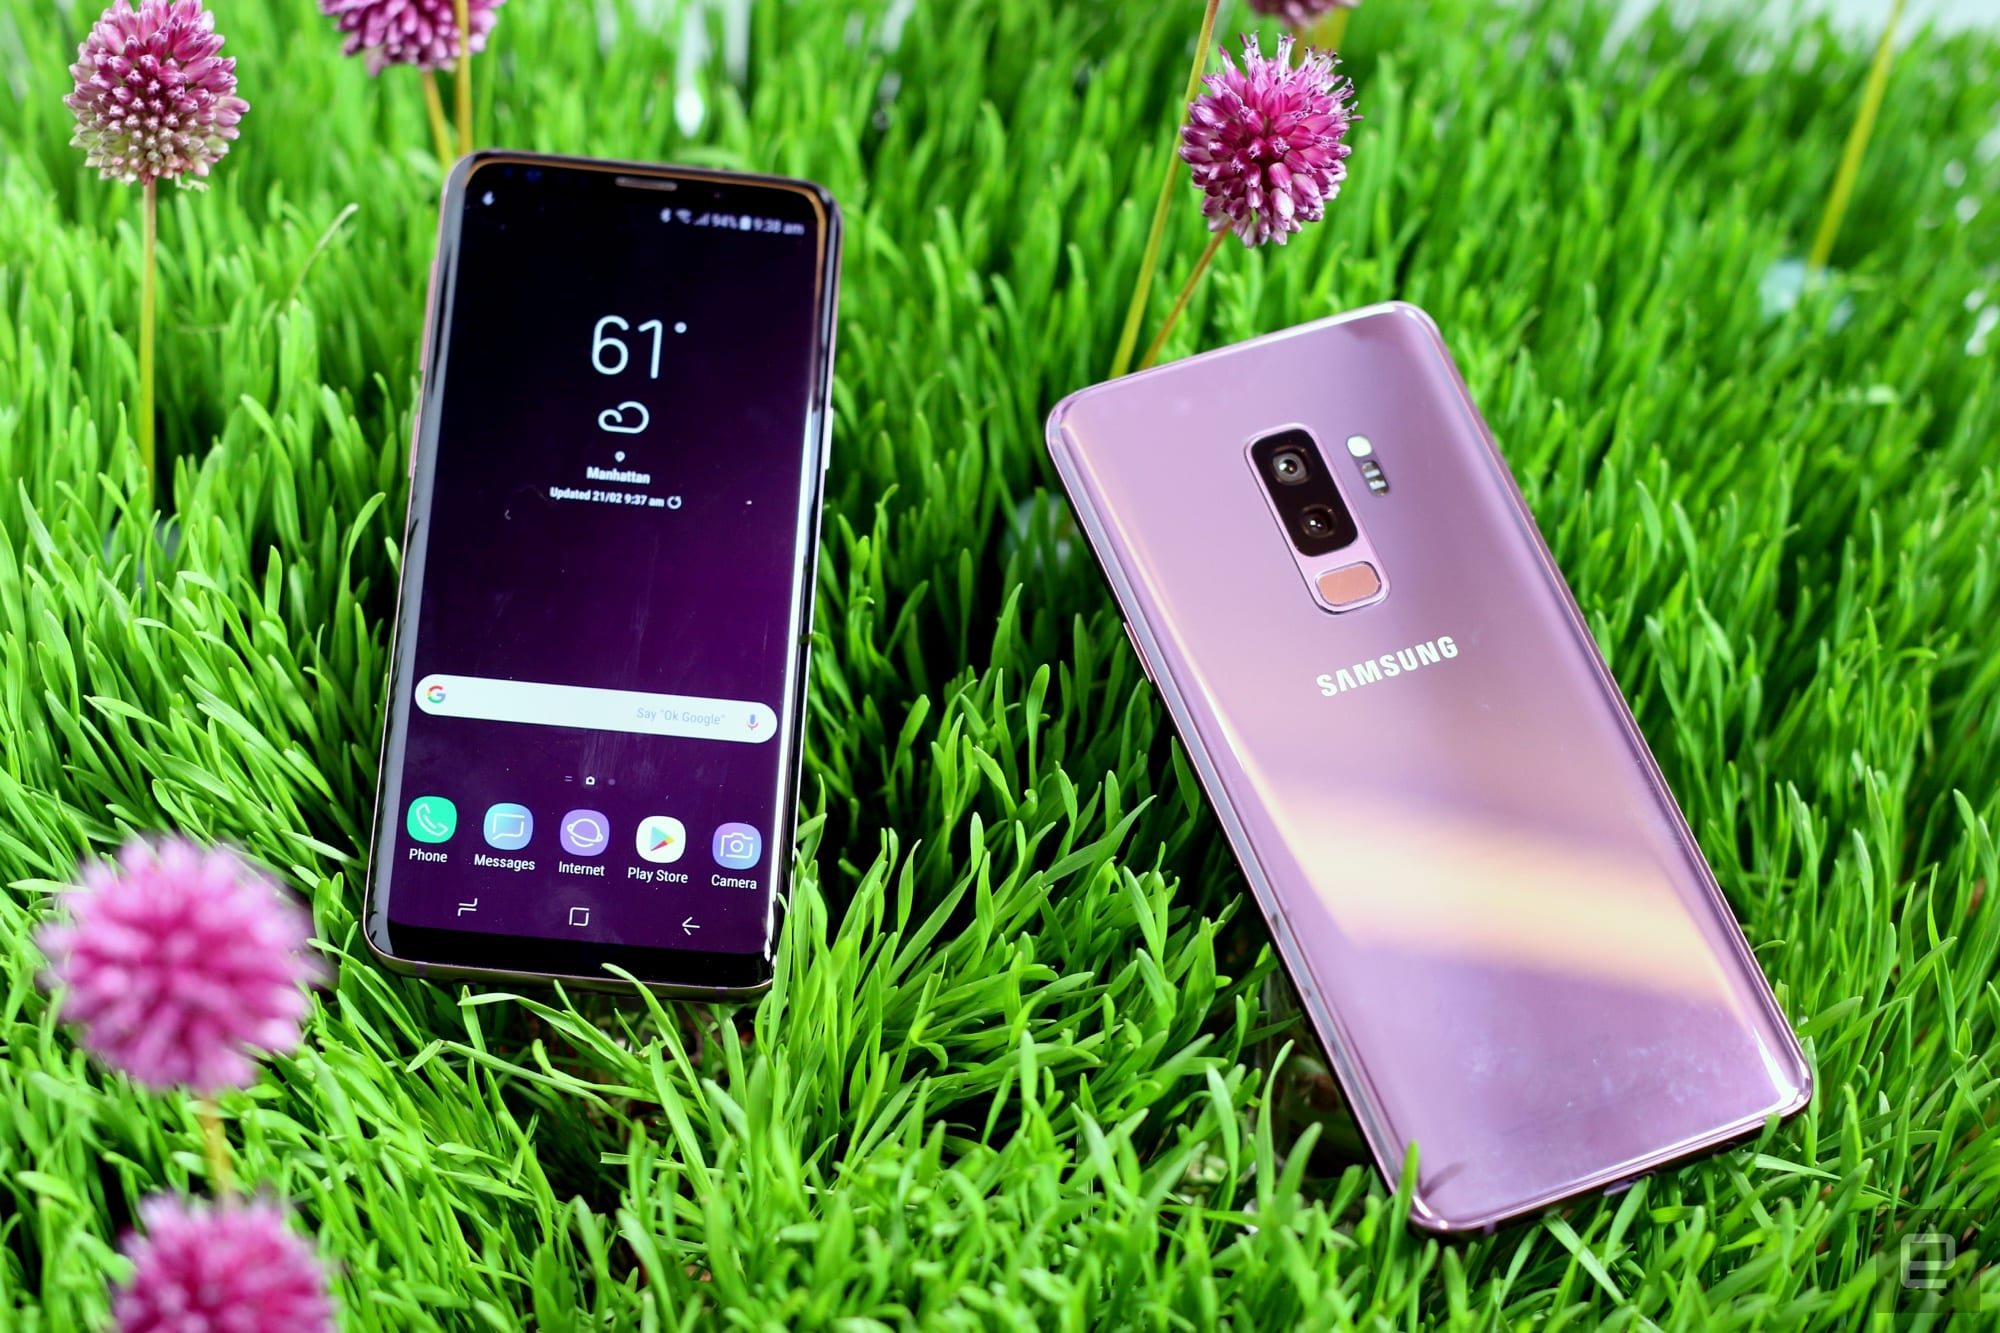 Samsung Galaxy S9 and S9+ hands-on: The devil is in the details